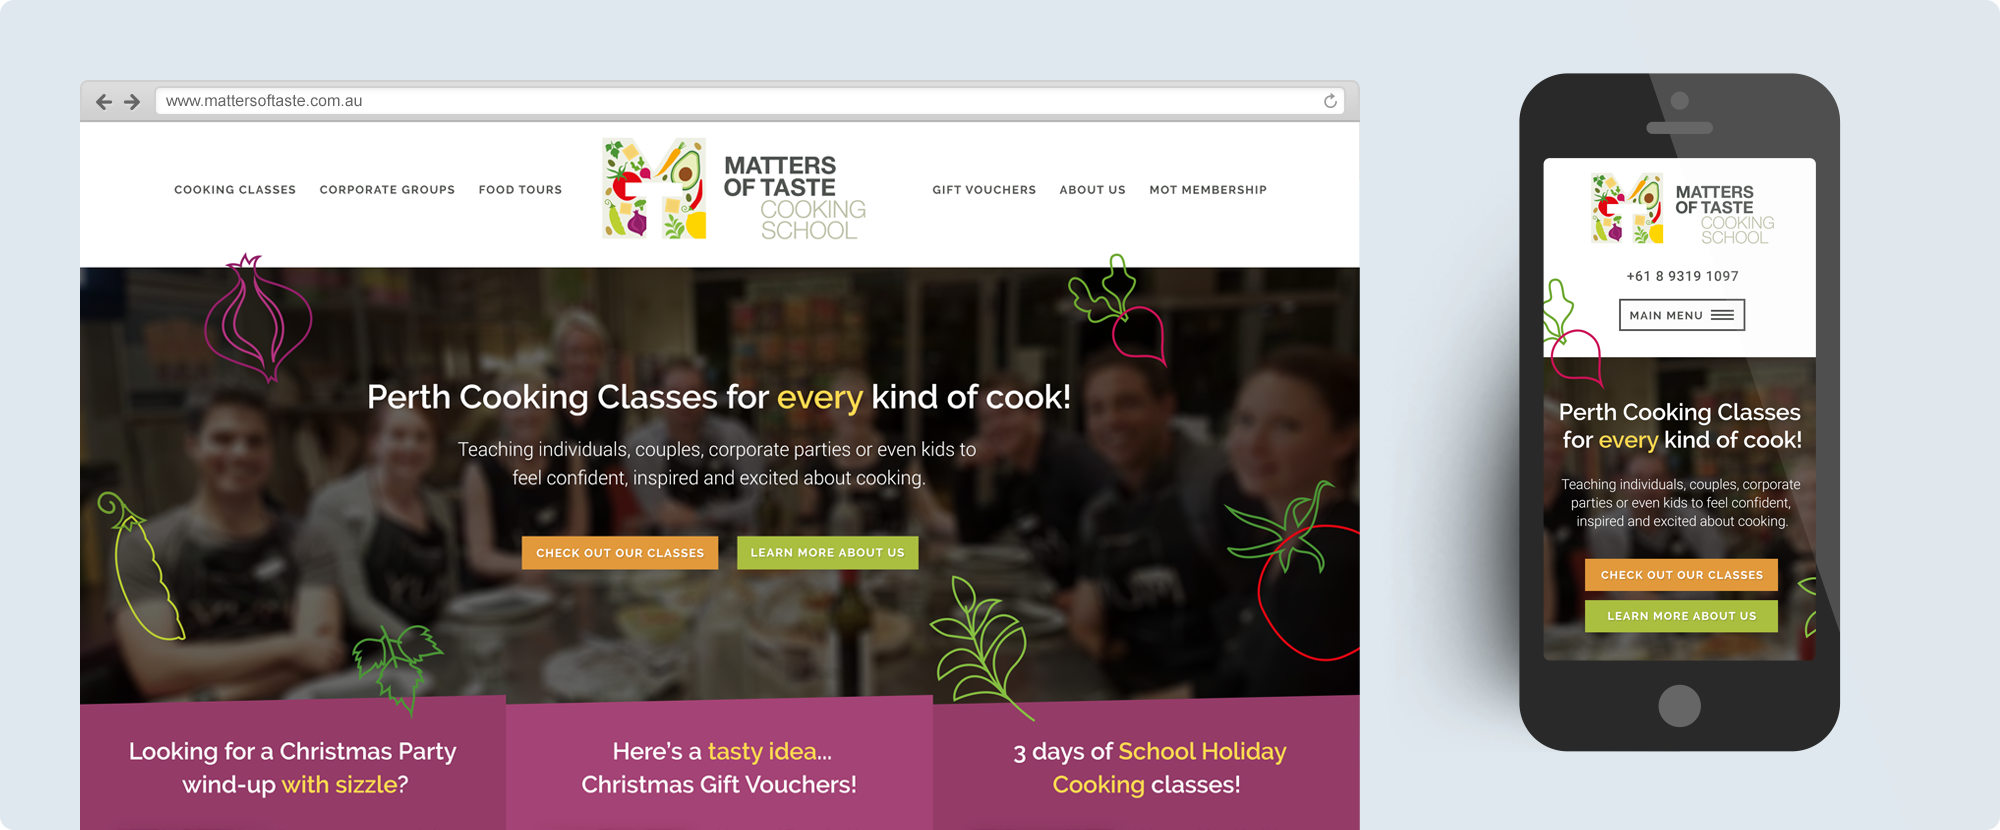 Matters of Taste Website Design